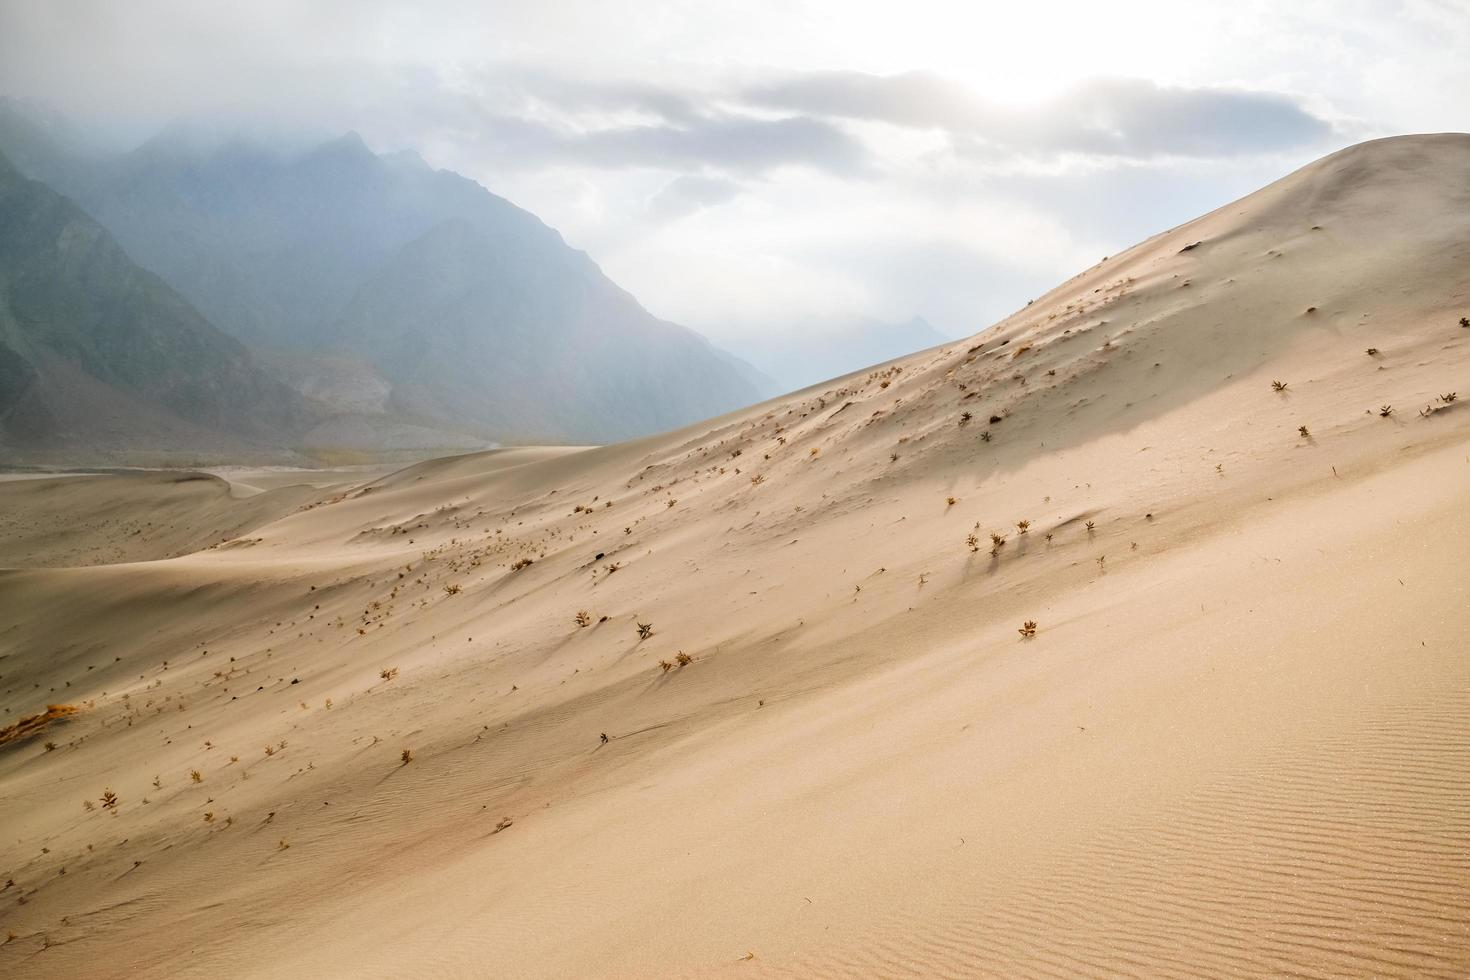 Sand dunes of cold desert amid mountains photo